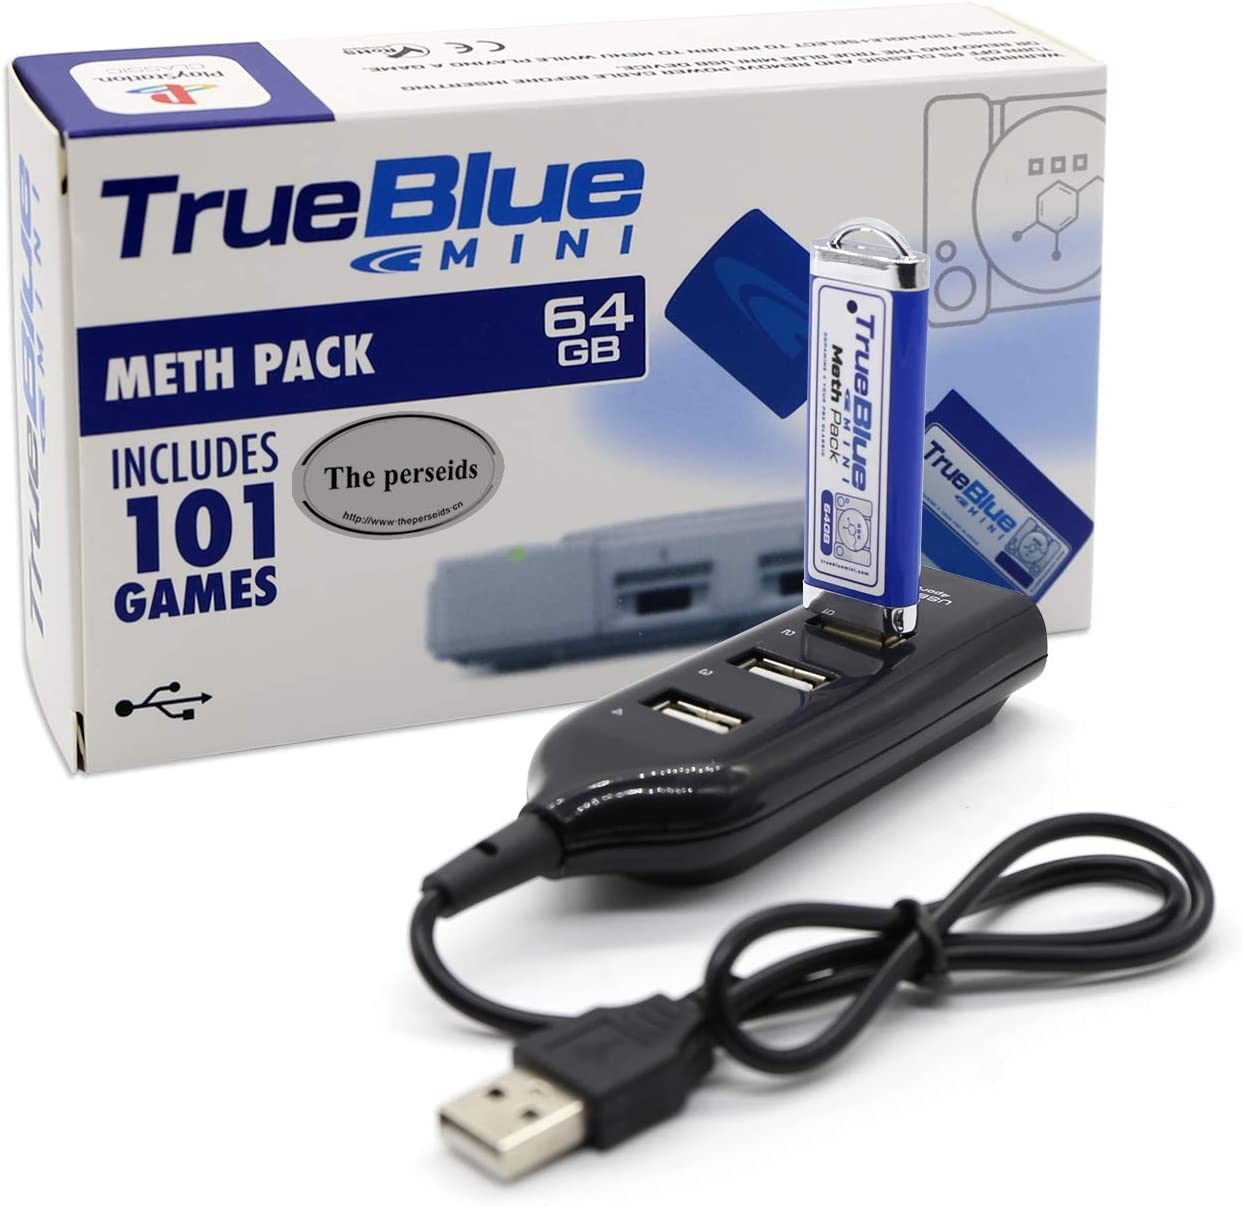 The perseids True Blue Mini Meth Pack USB Flash Drives 64GB Game Memory Stick with 4-Port Hub for Playstation Classic - Includes 101 Games (Meth Pack)